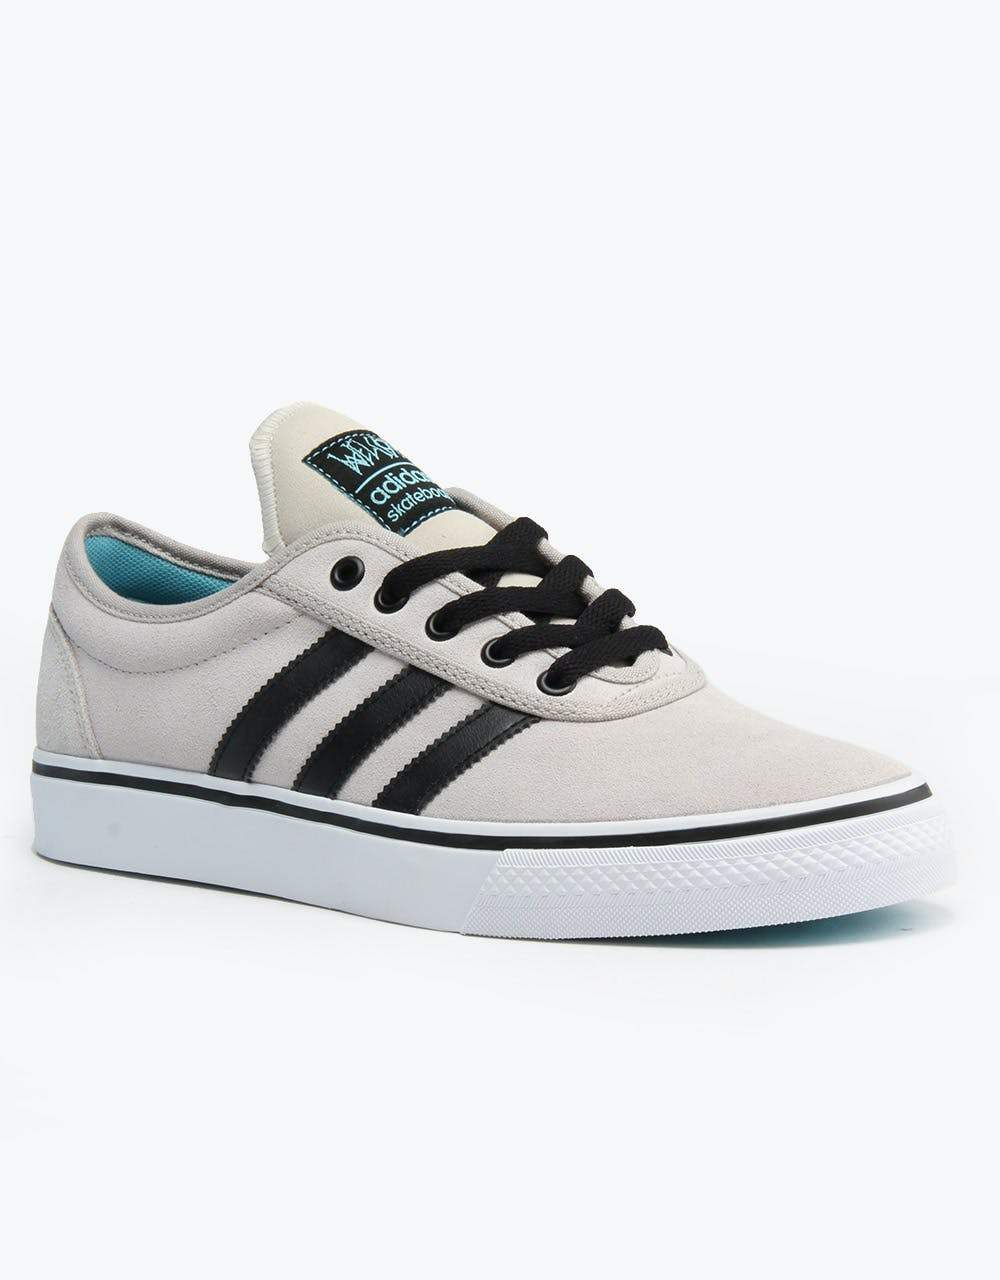 ADIDAS ADI EASE - WELCOME | Shoes by adidas Skateboarding 1